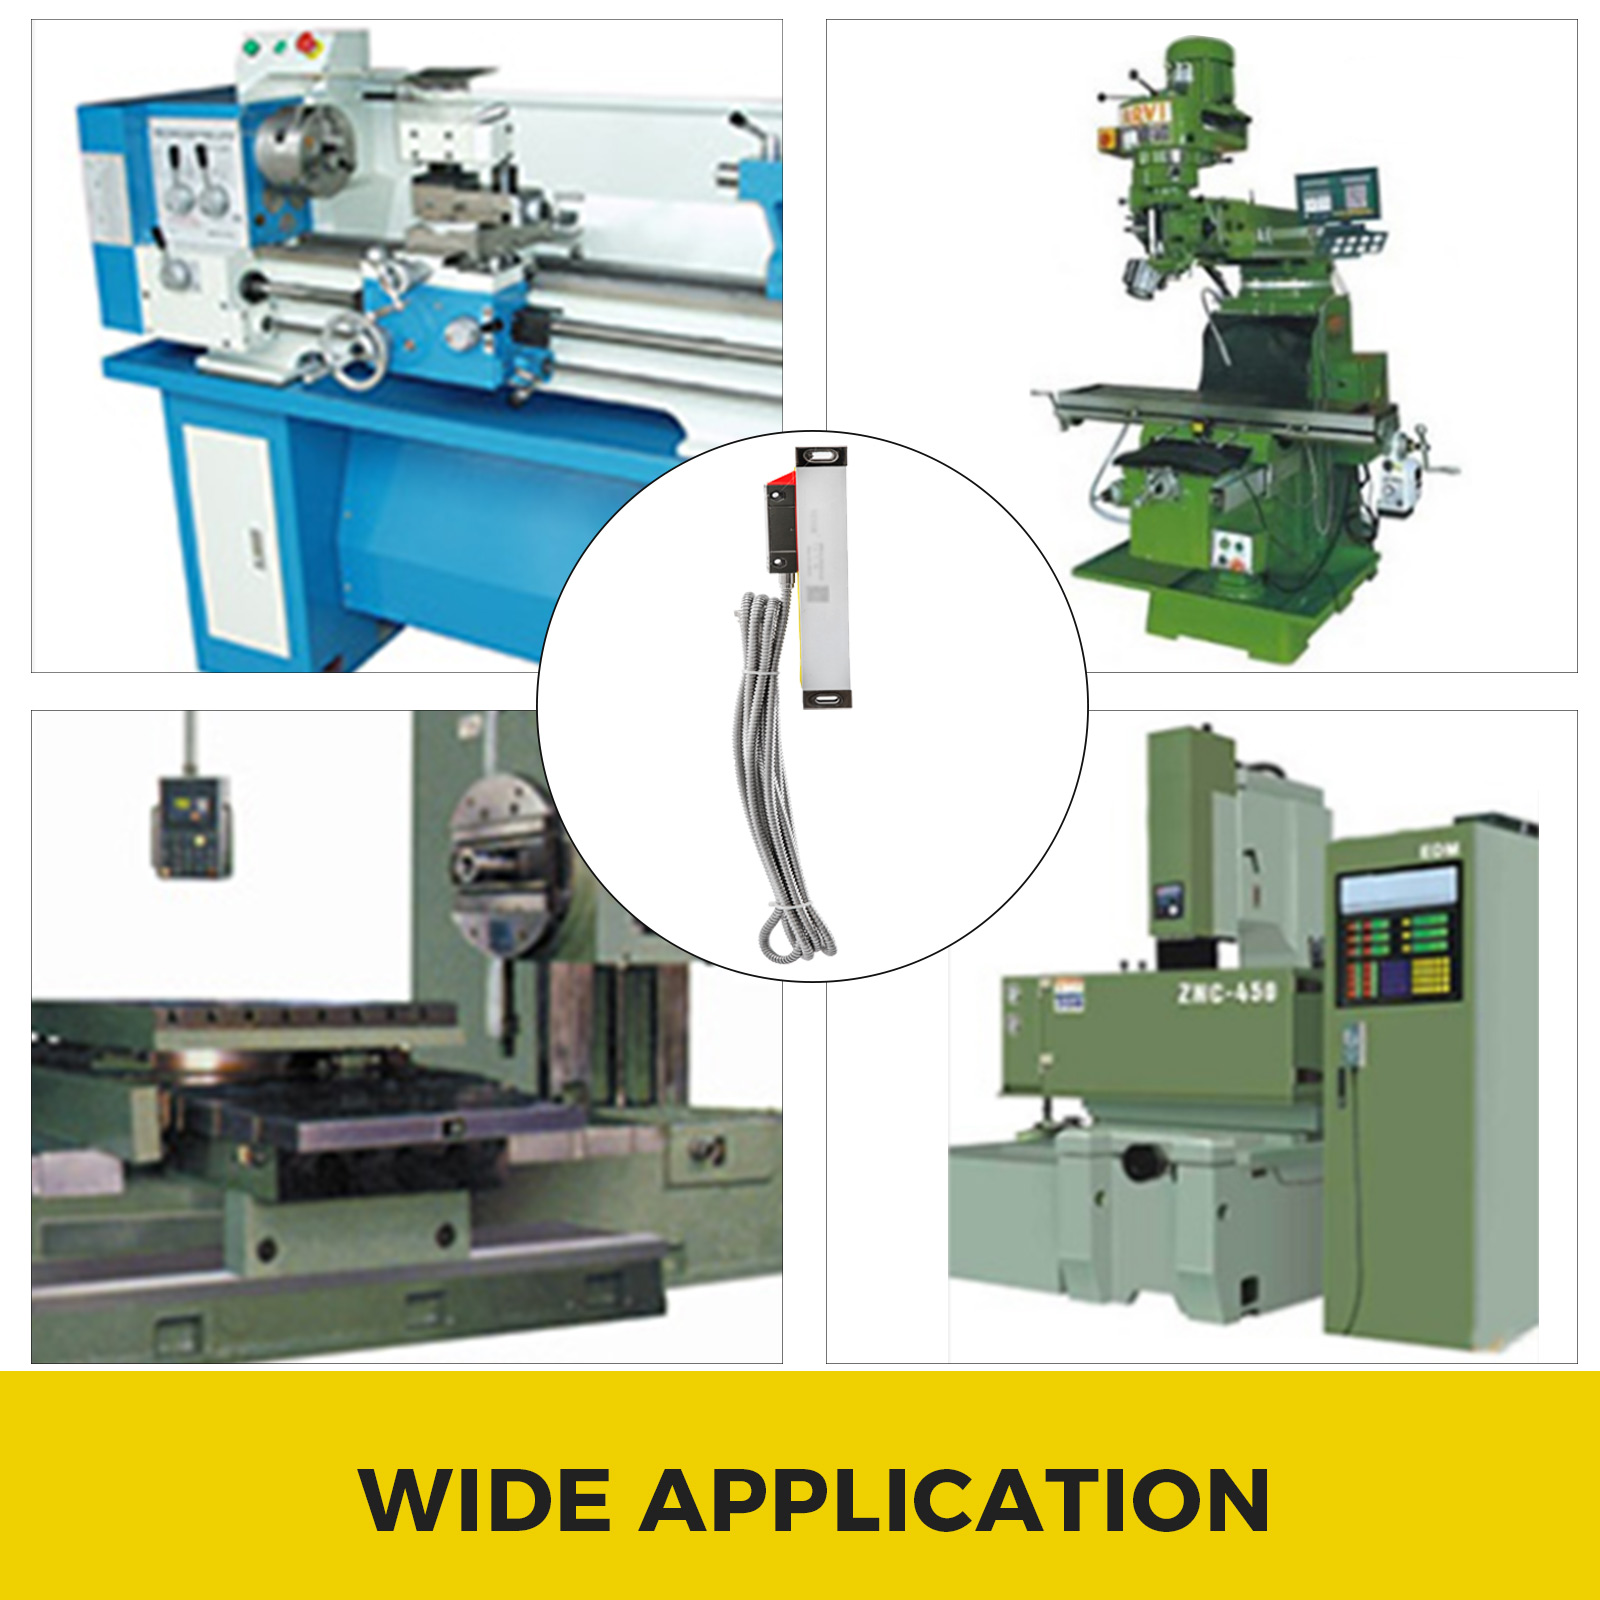 2-3-Axis-Digital-Readout-Linear-Scale-Double-Seal-5-Bearing-System-Grinding thumbnail 43